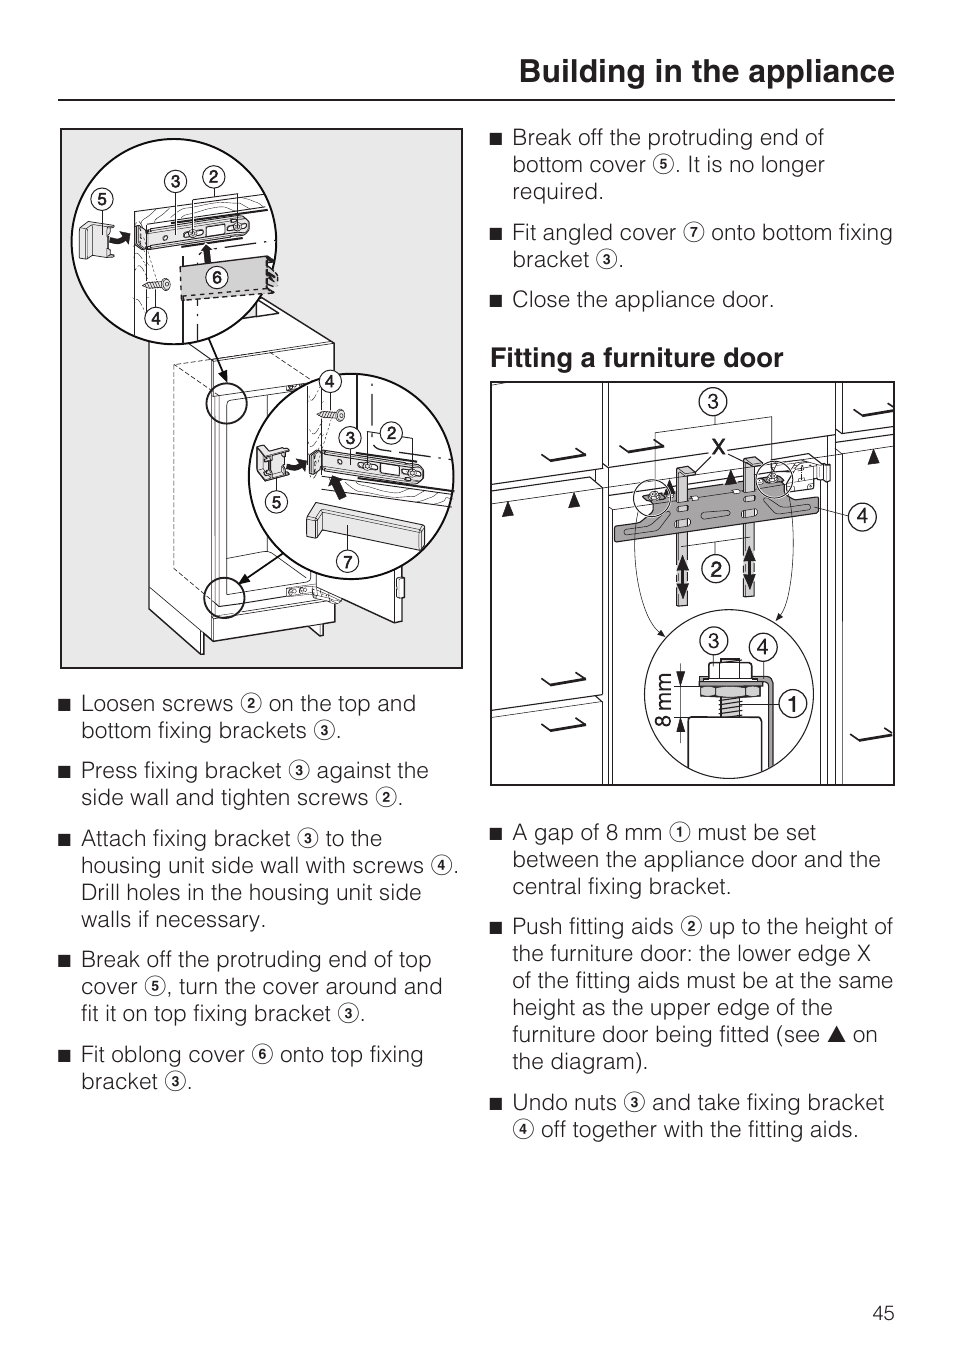 Fitting a furniture door 45, Building in the appliance